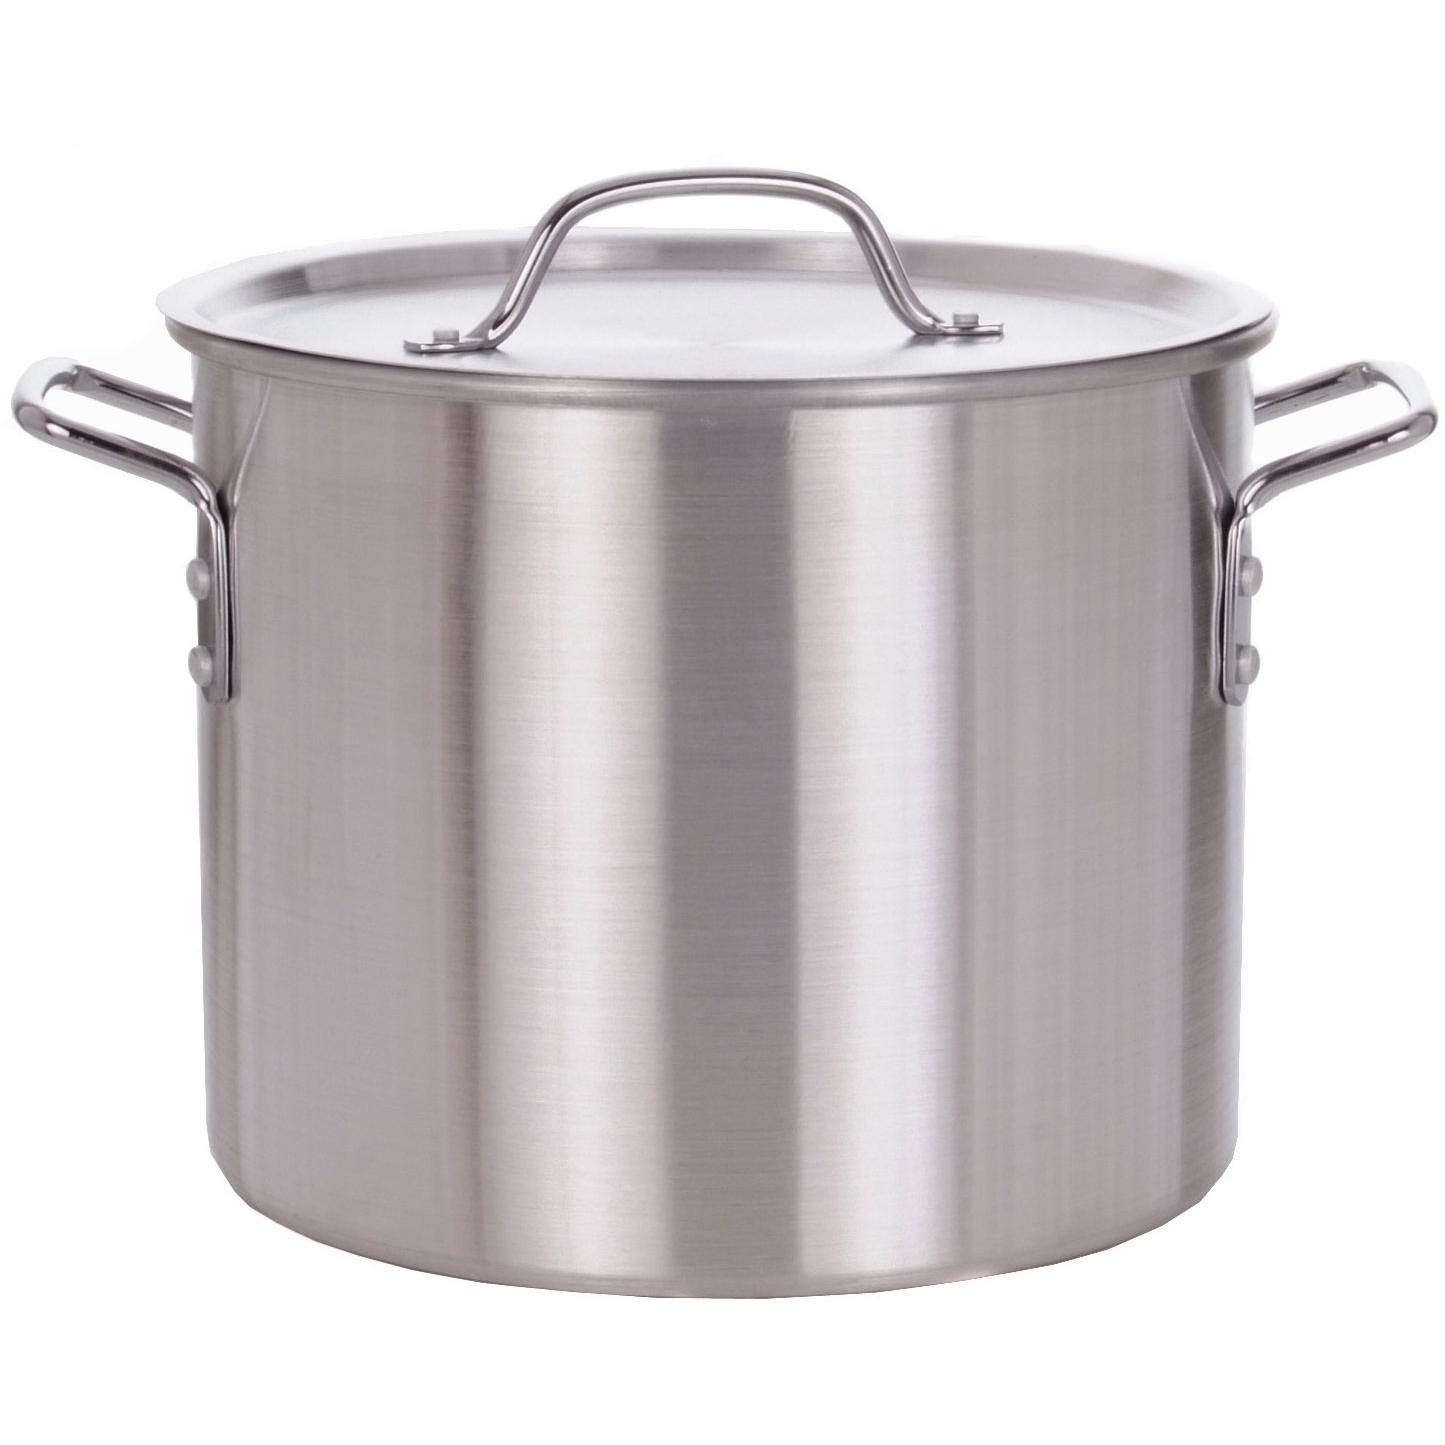 Stainless steel cooking pots images for Cuisine aluminium